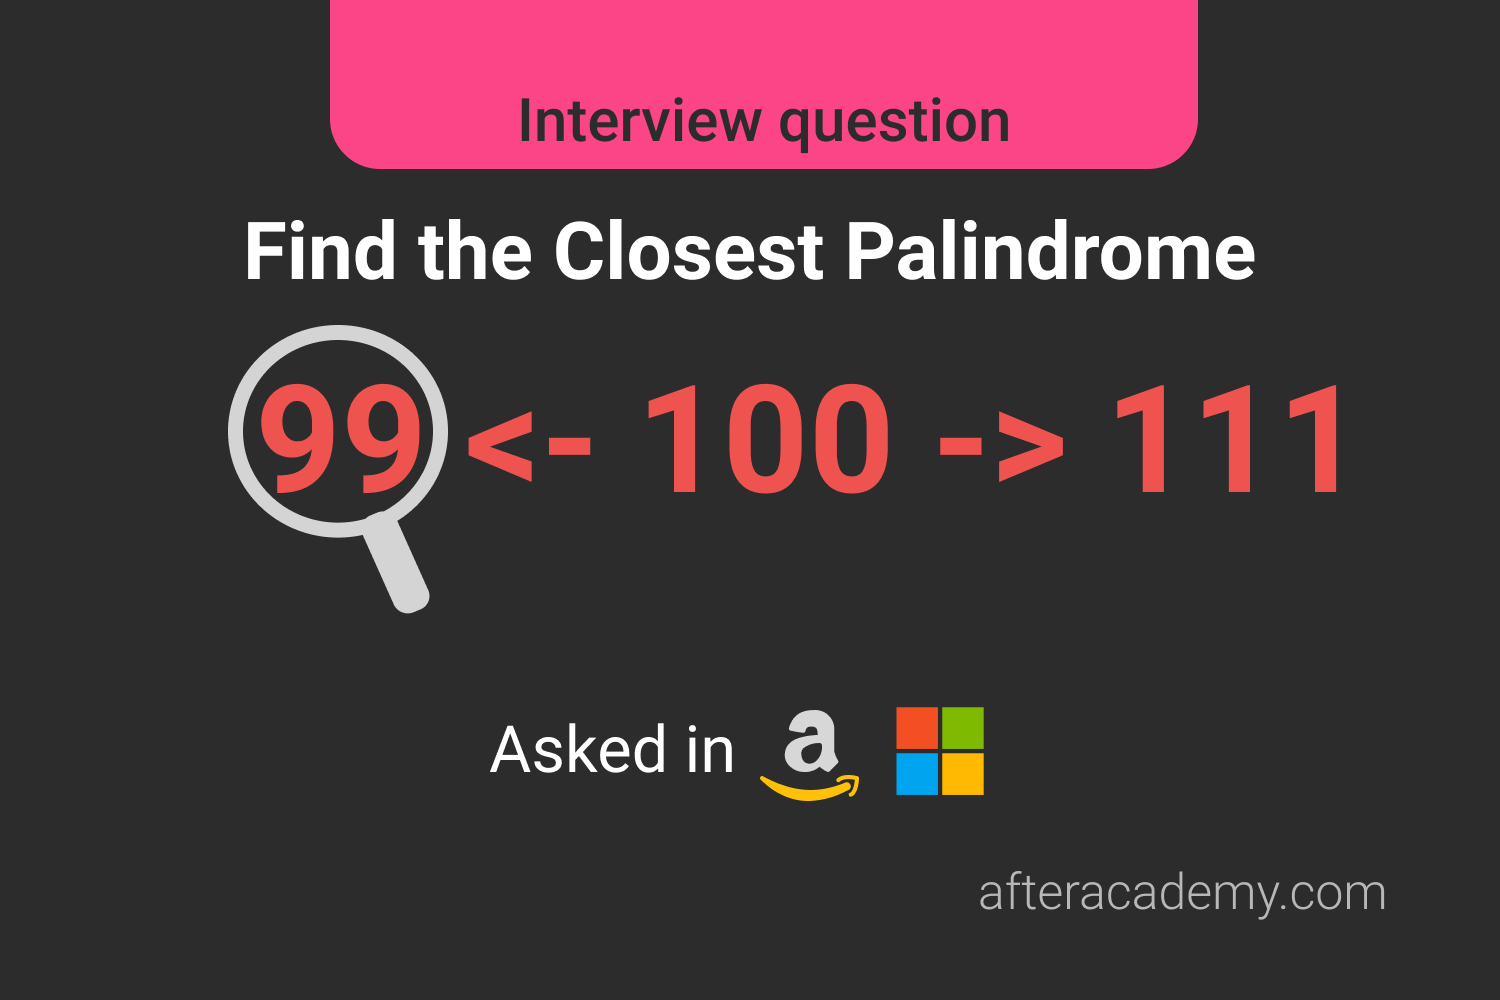 Find the Closest Palindrome